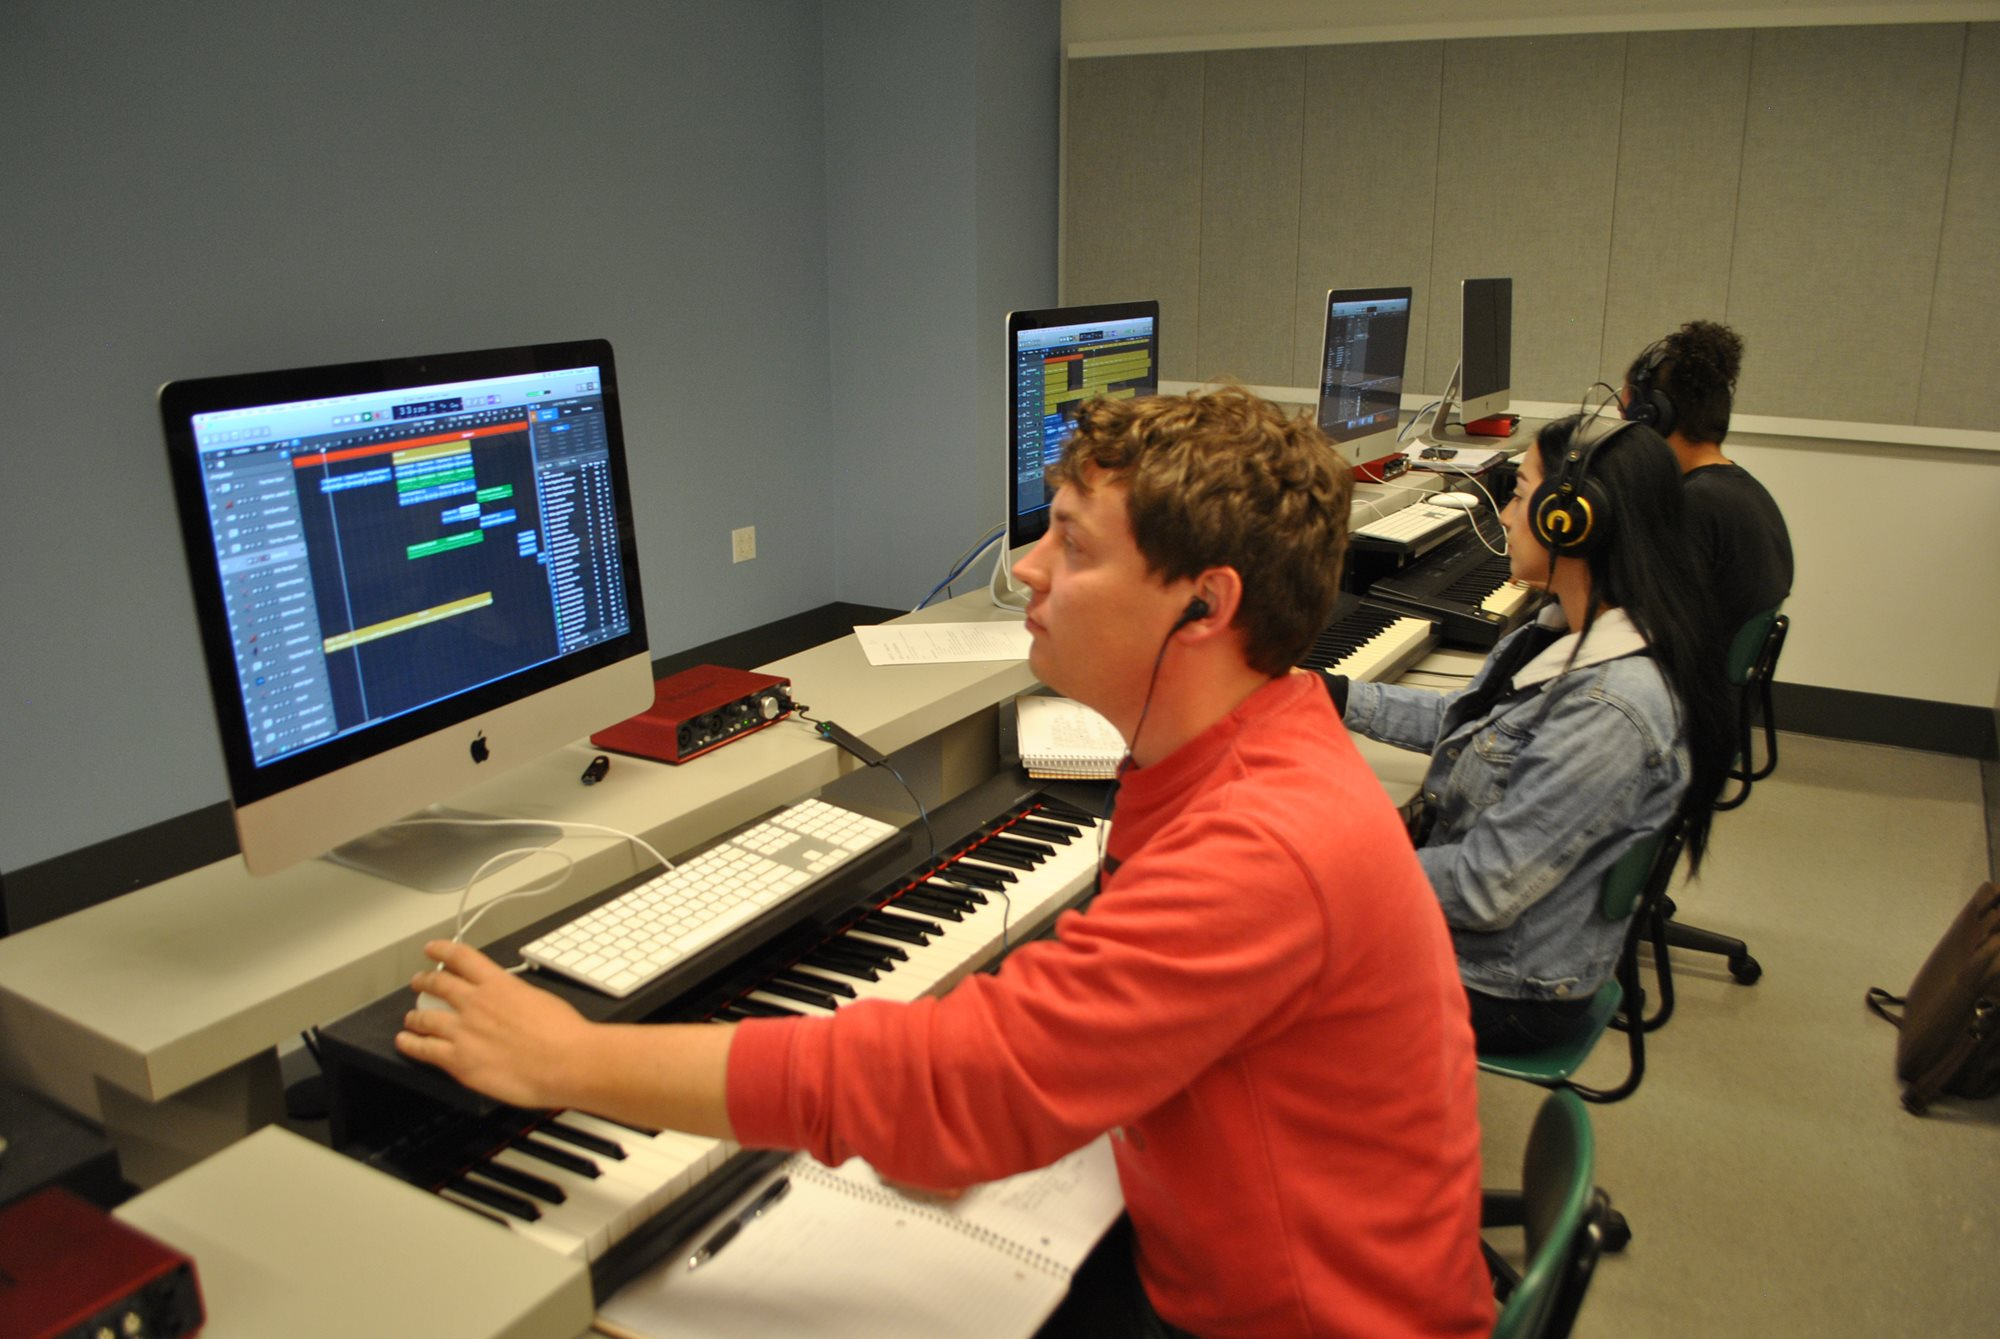 A student operates a computer in front of a MIDI keyboard, running digital audio software.